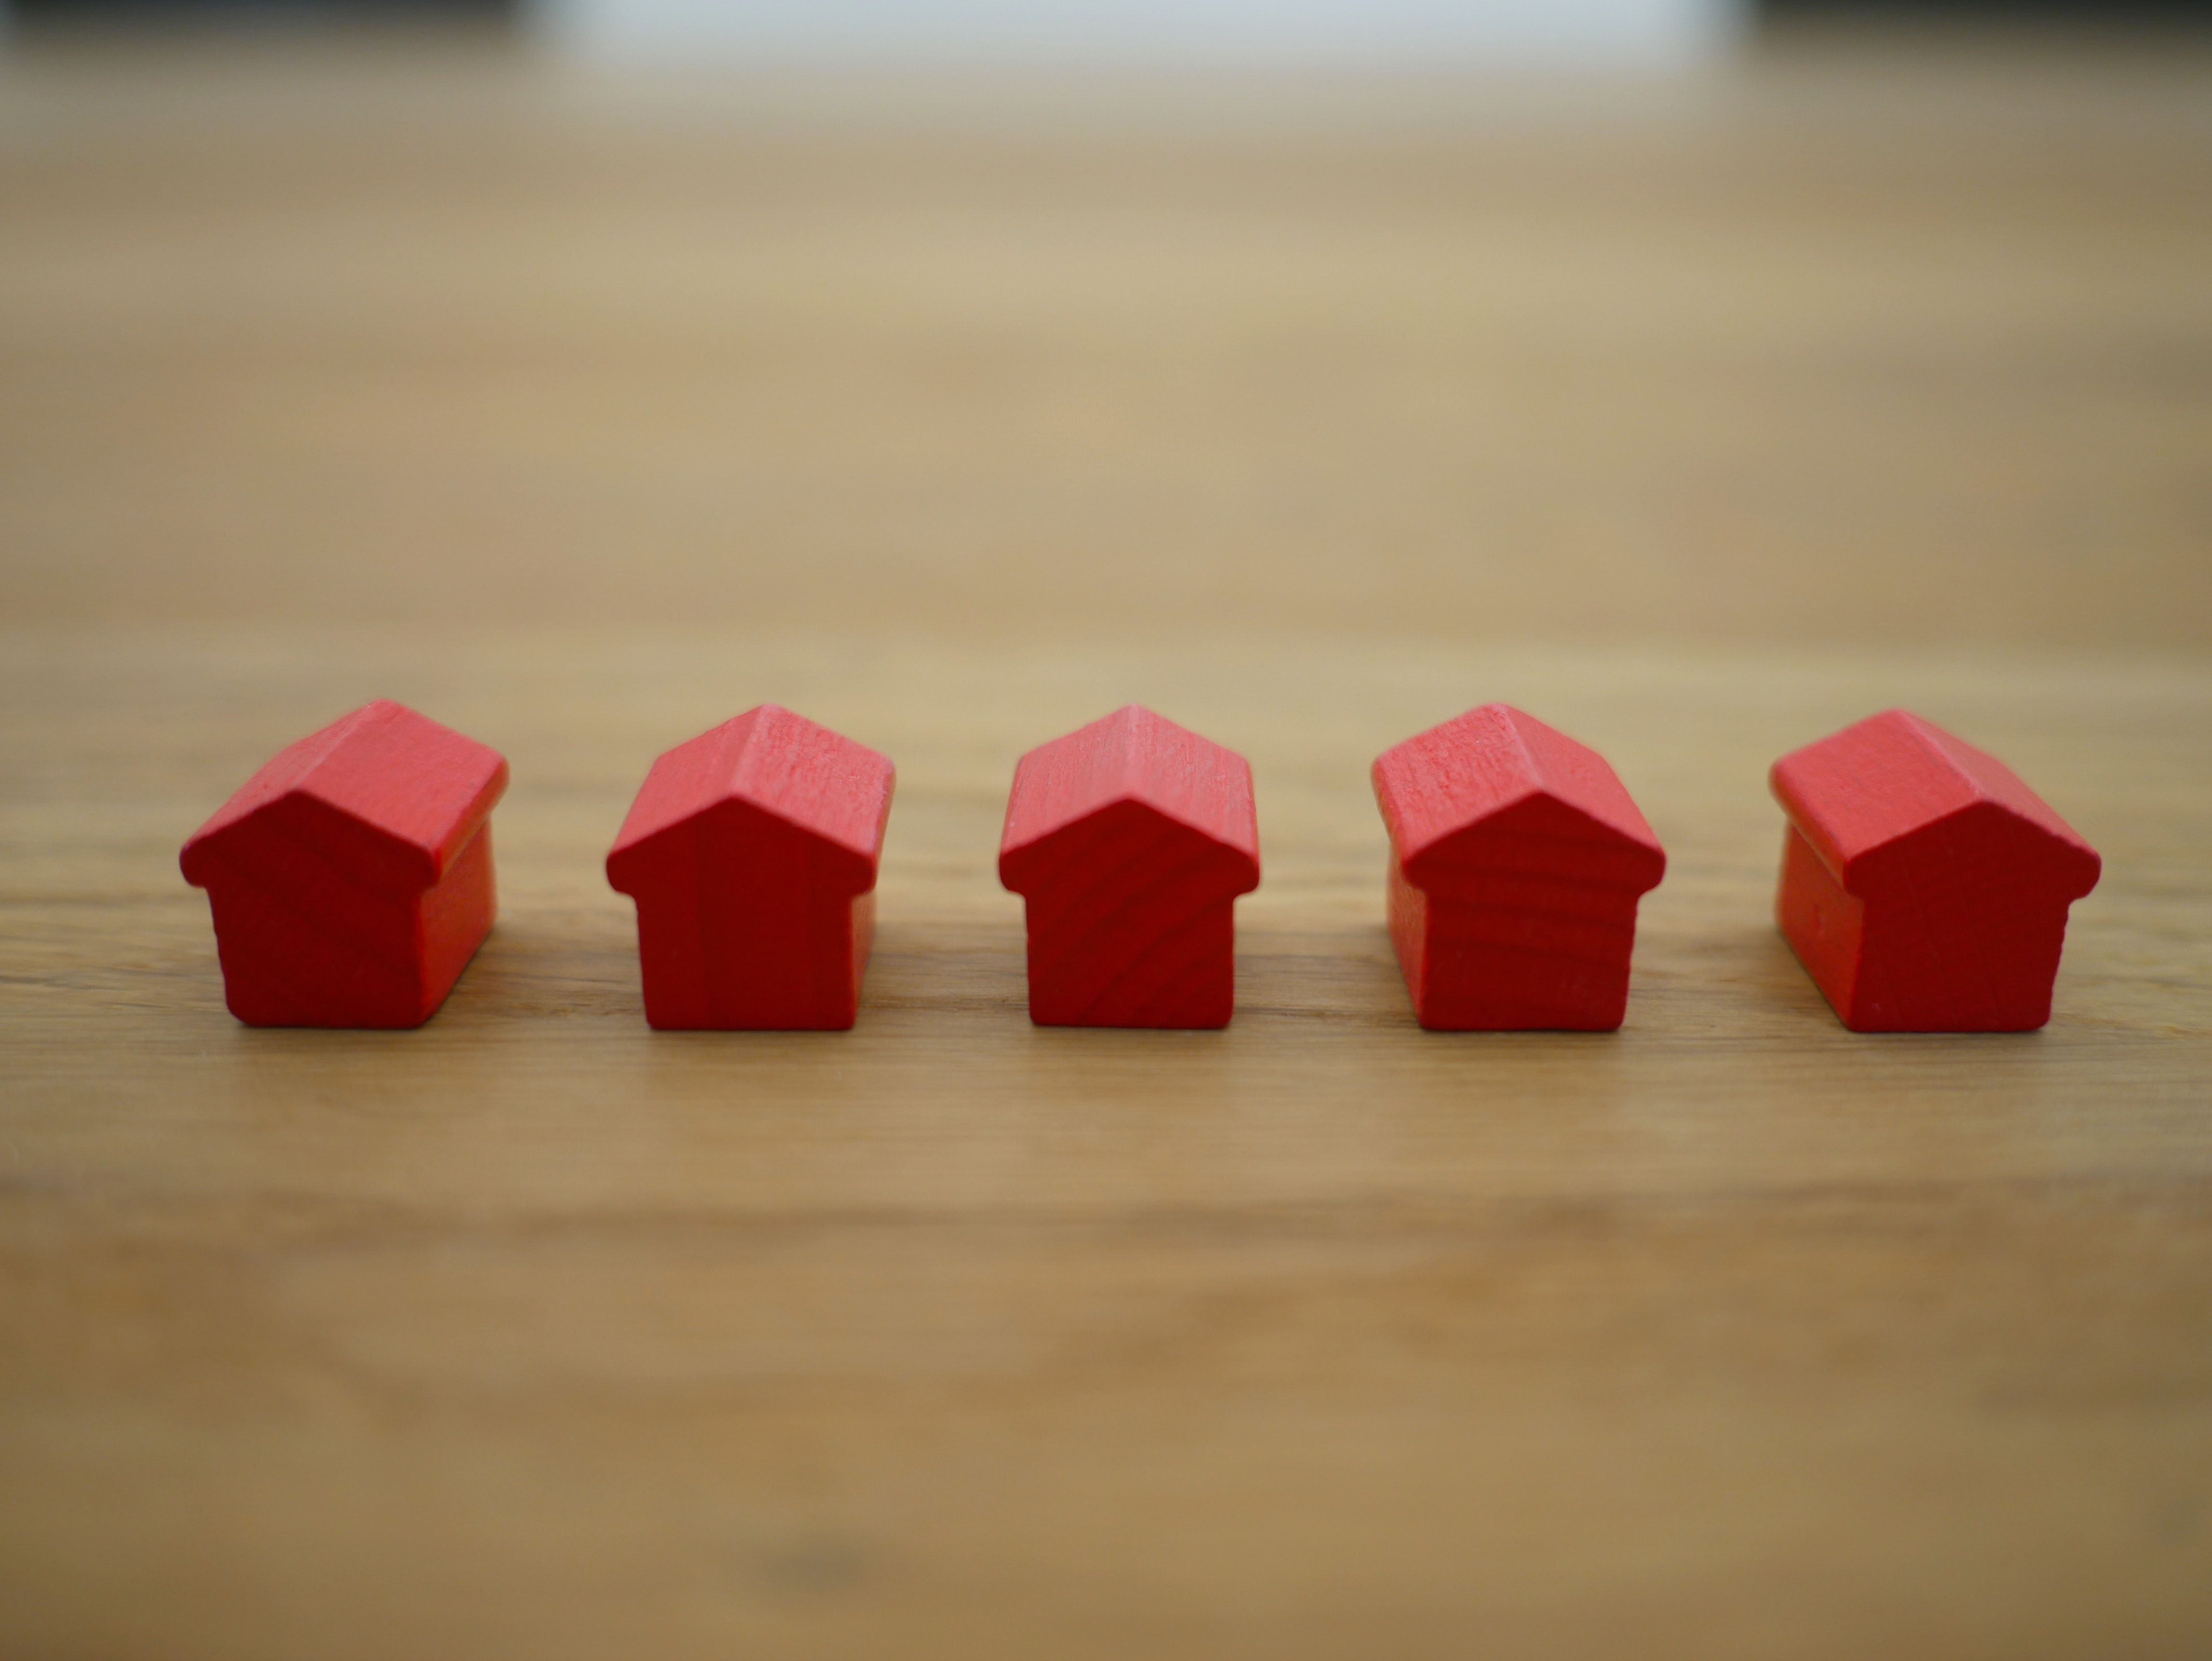 tiny red house figures on a table